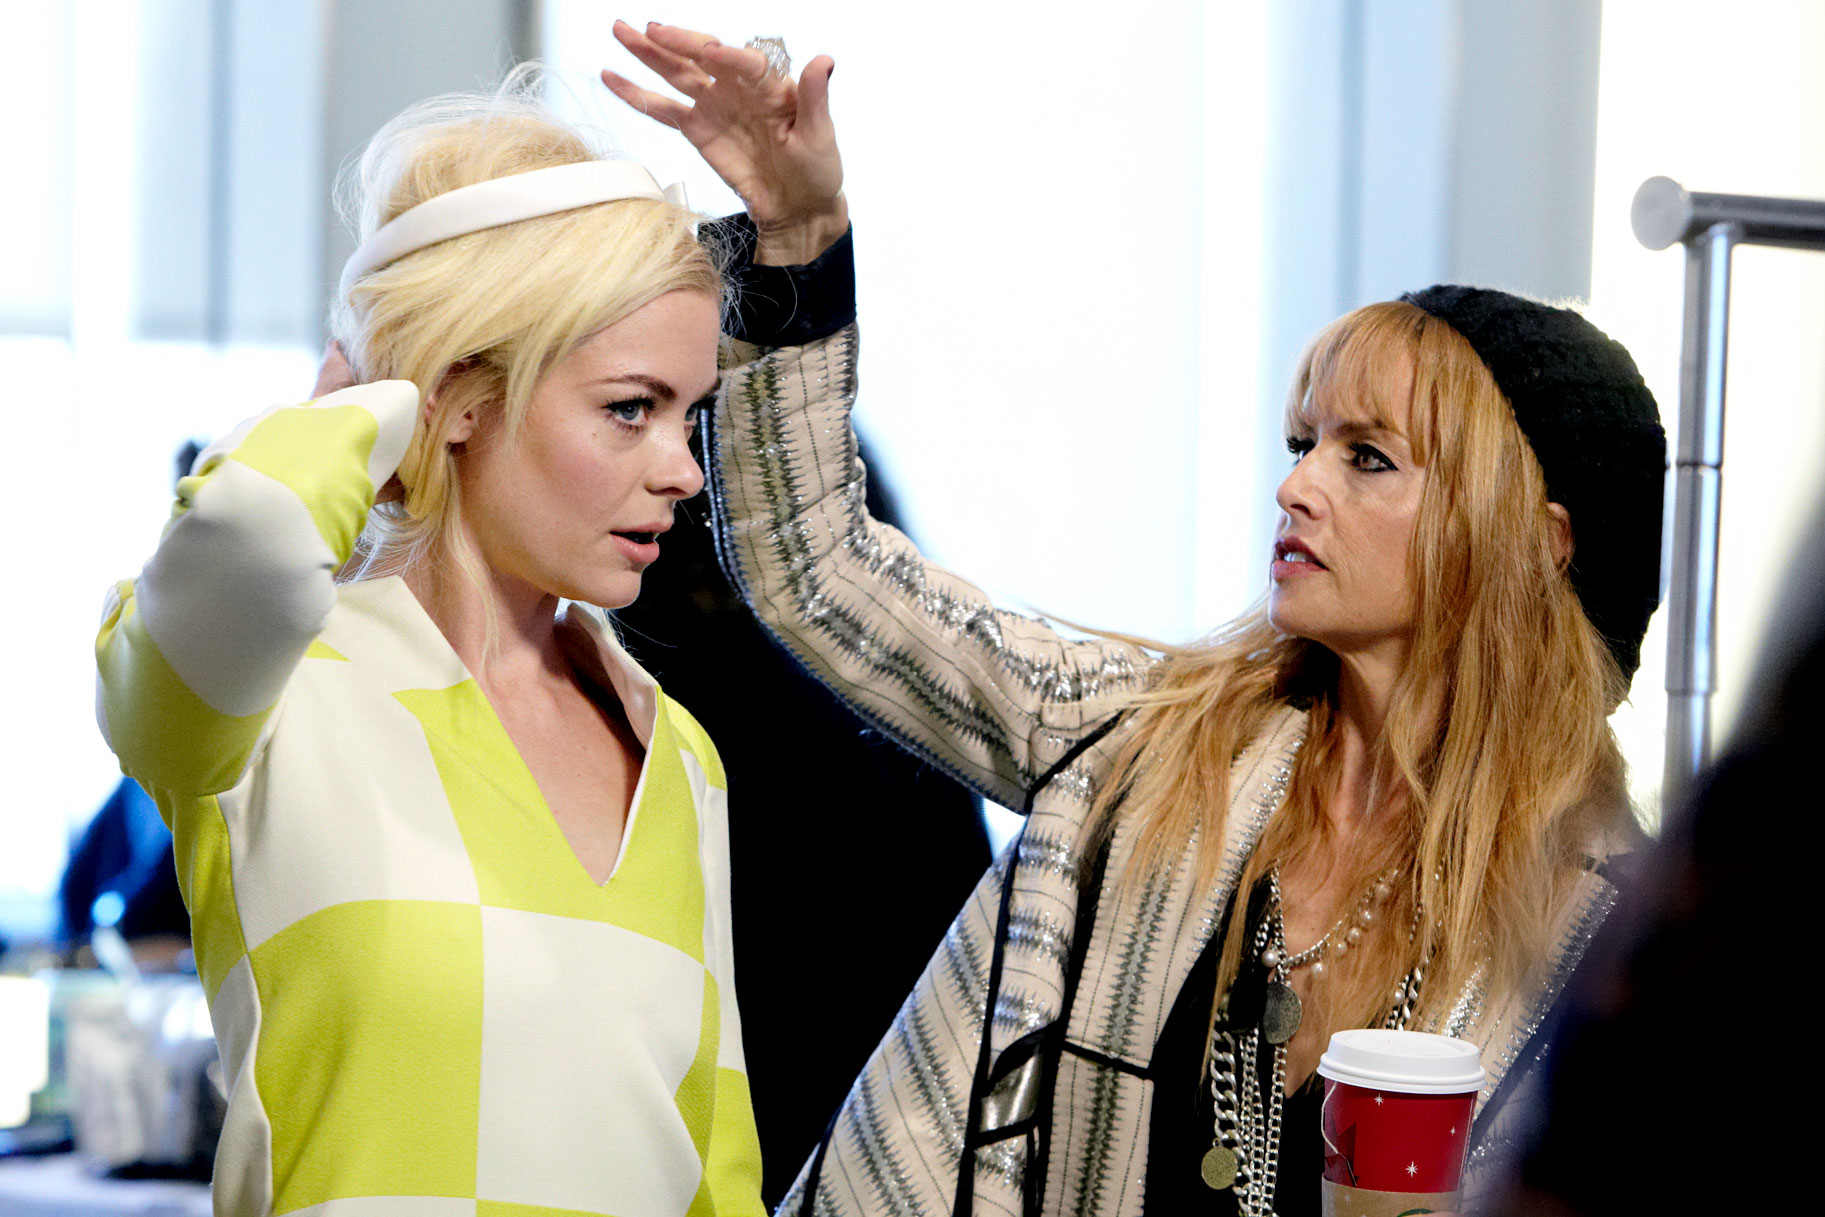 Rachel Zoe styling Jaime King. Rachel Zoe has described many times all the hard work she put in, and she is no stranger to the on-set abuse seasoned stylists endure. The styling industry is seeing an over-saturation of untrained people in the market. This skews the professional perception of our industry.